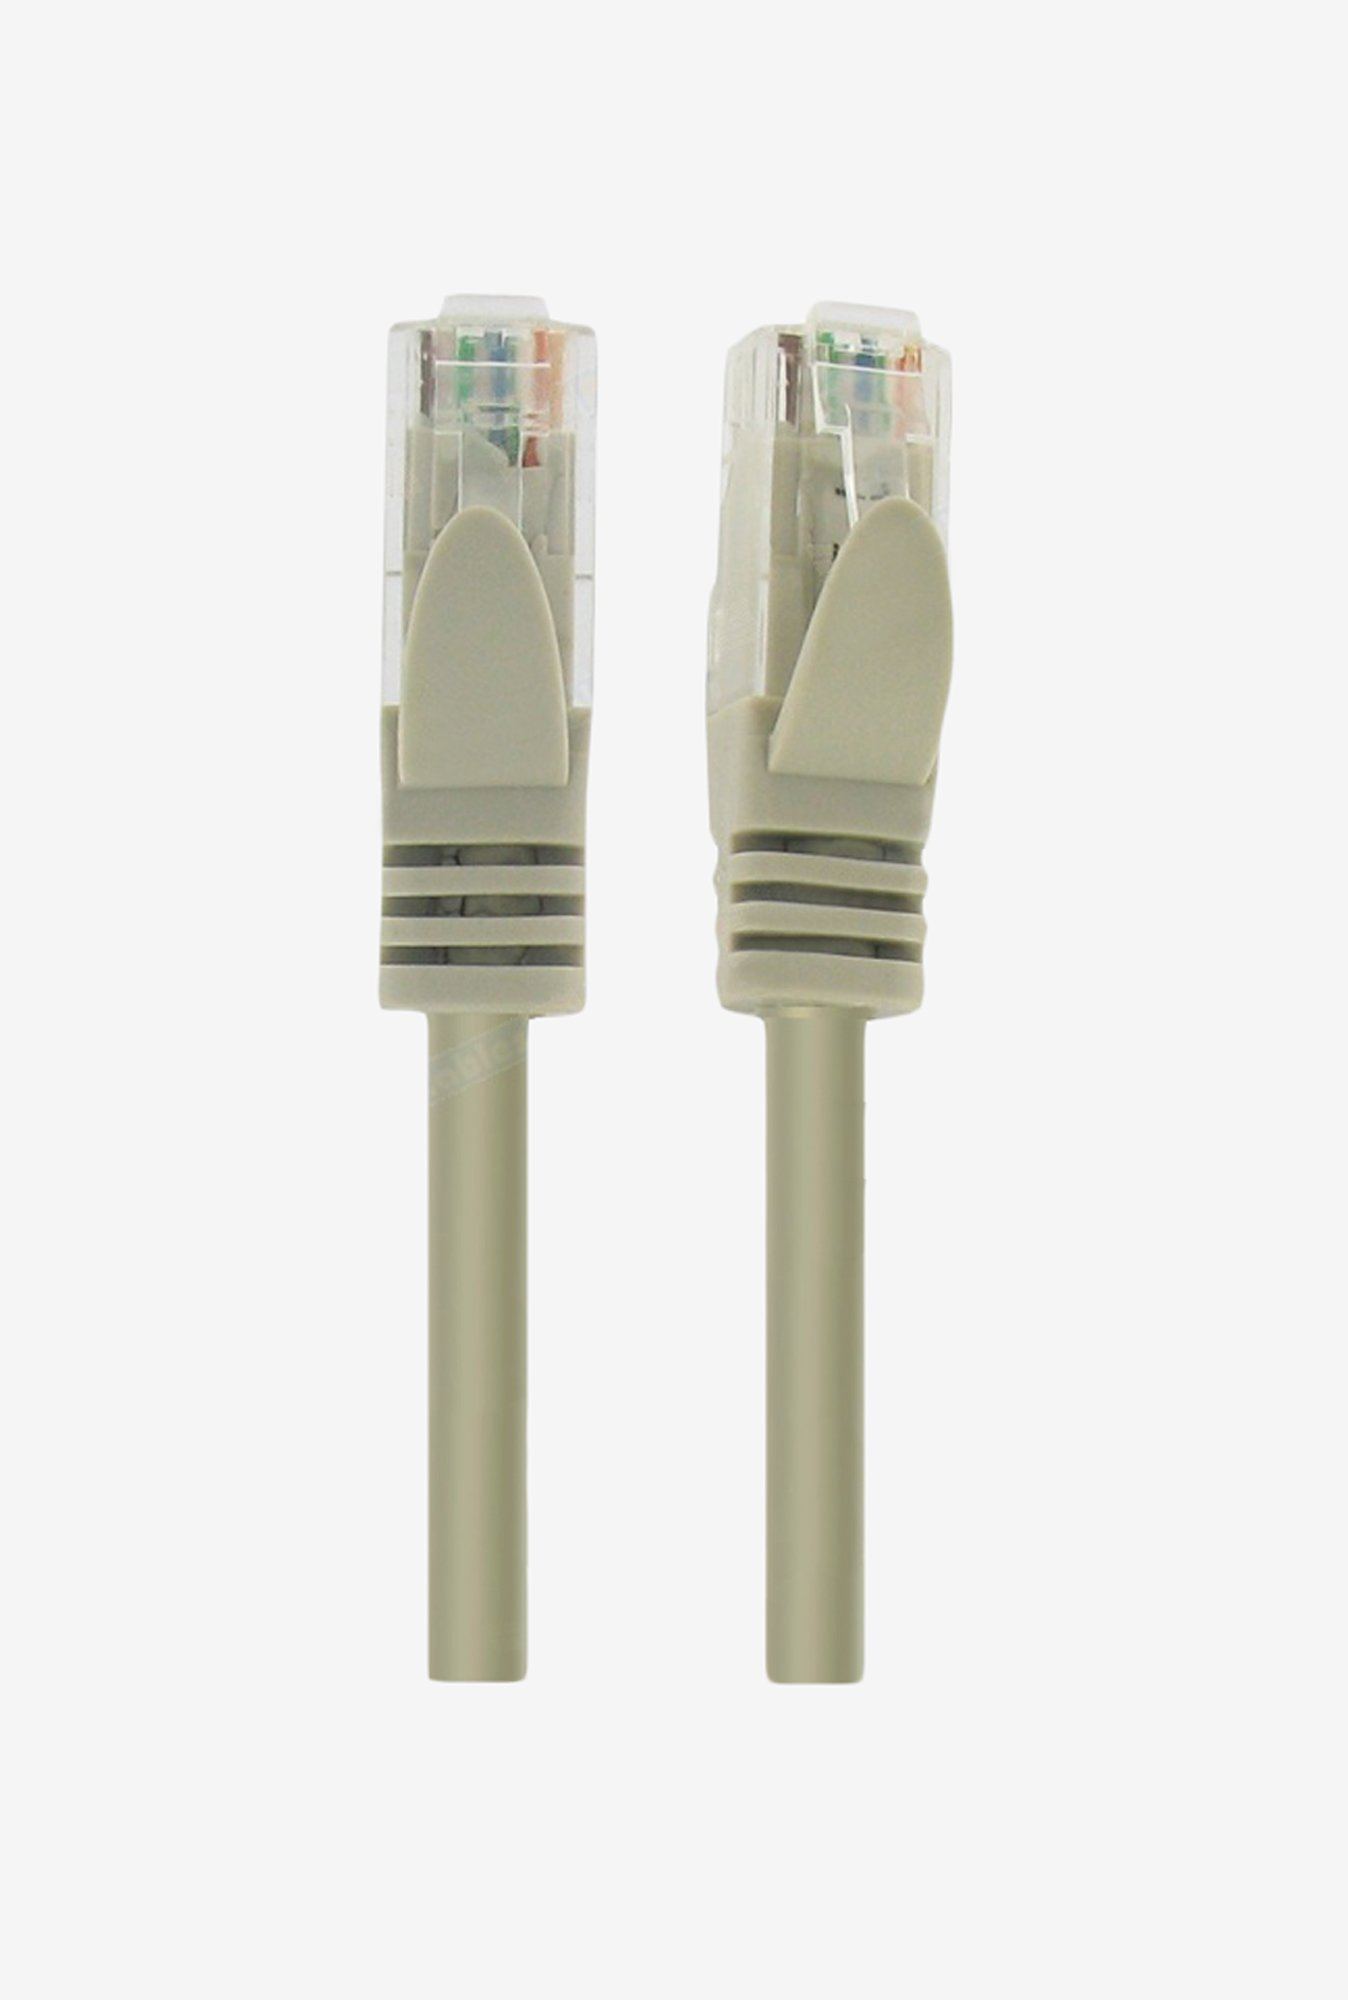 Energizer Classic LCAECRJ4550 5m Ethernet Cable Grey